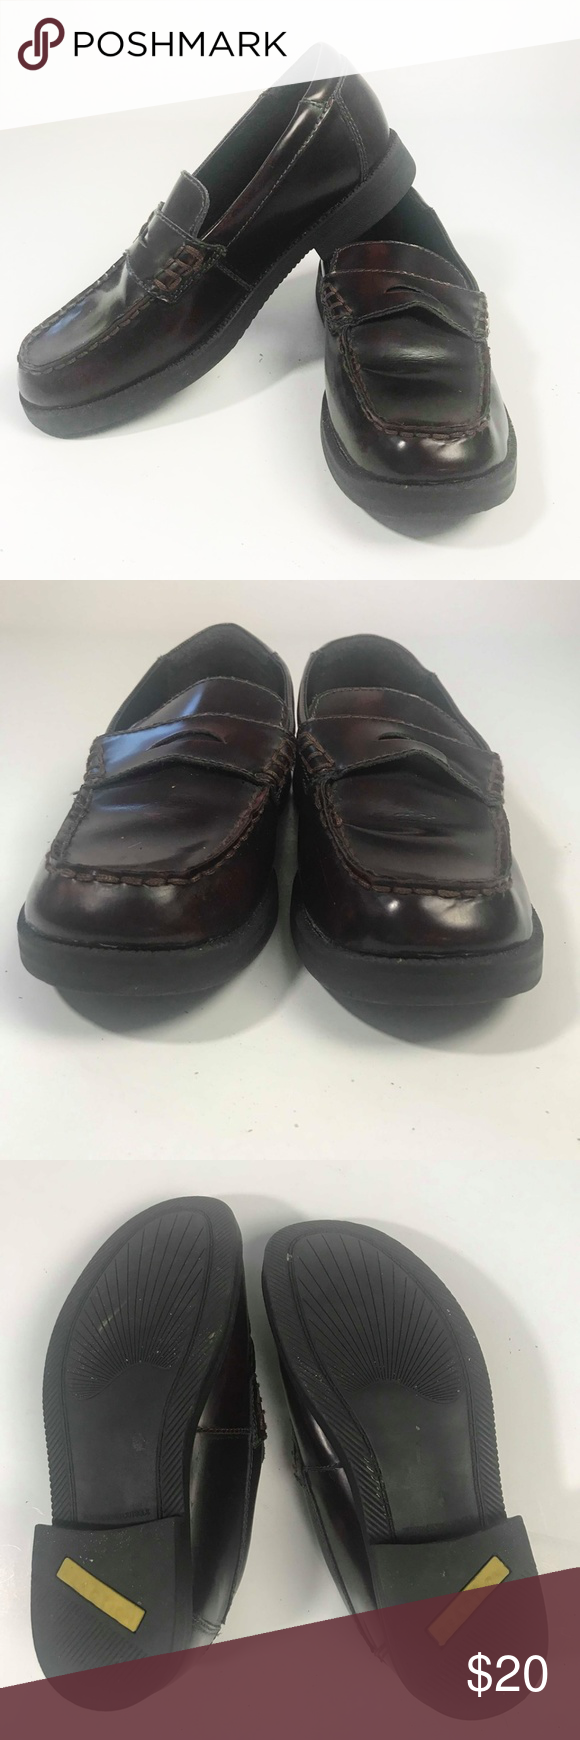 Kenneth Cole Boys Cordovan Penny Loafer Shoe 4.5 | Penny ...